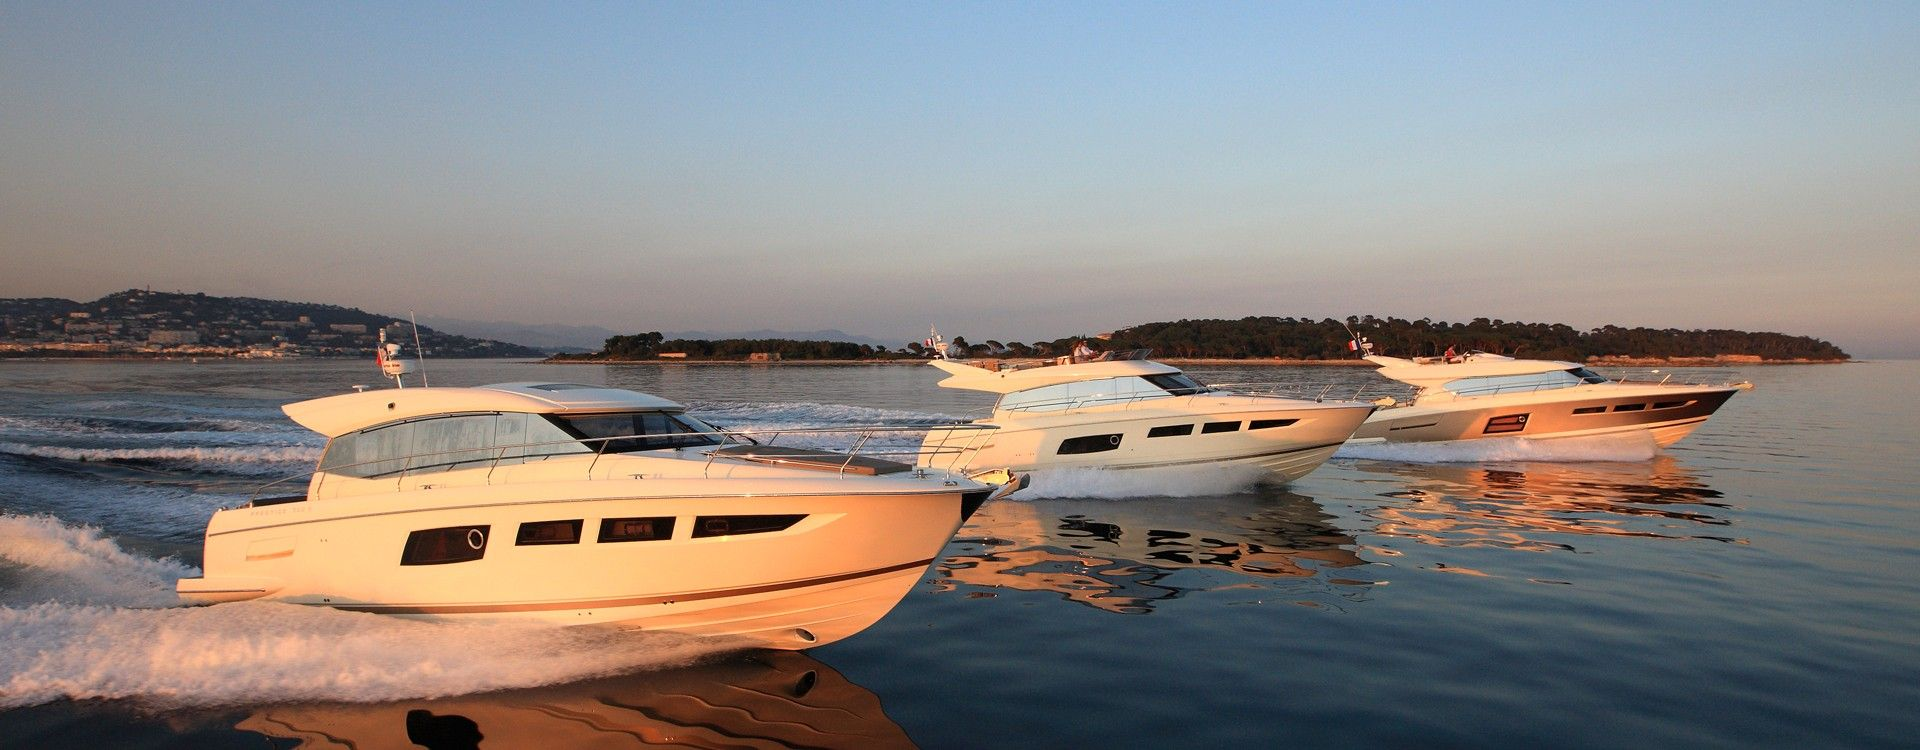 Jeanneau motor boats - always leading the way